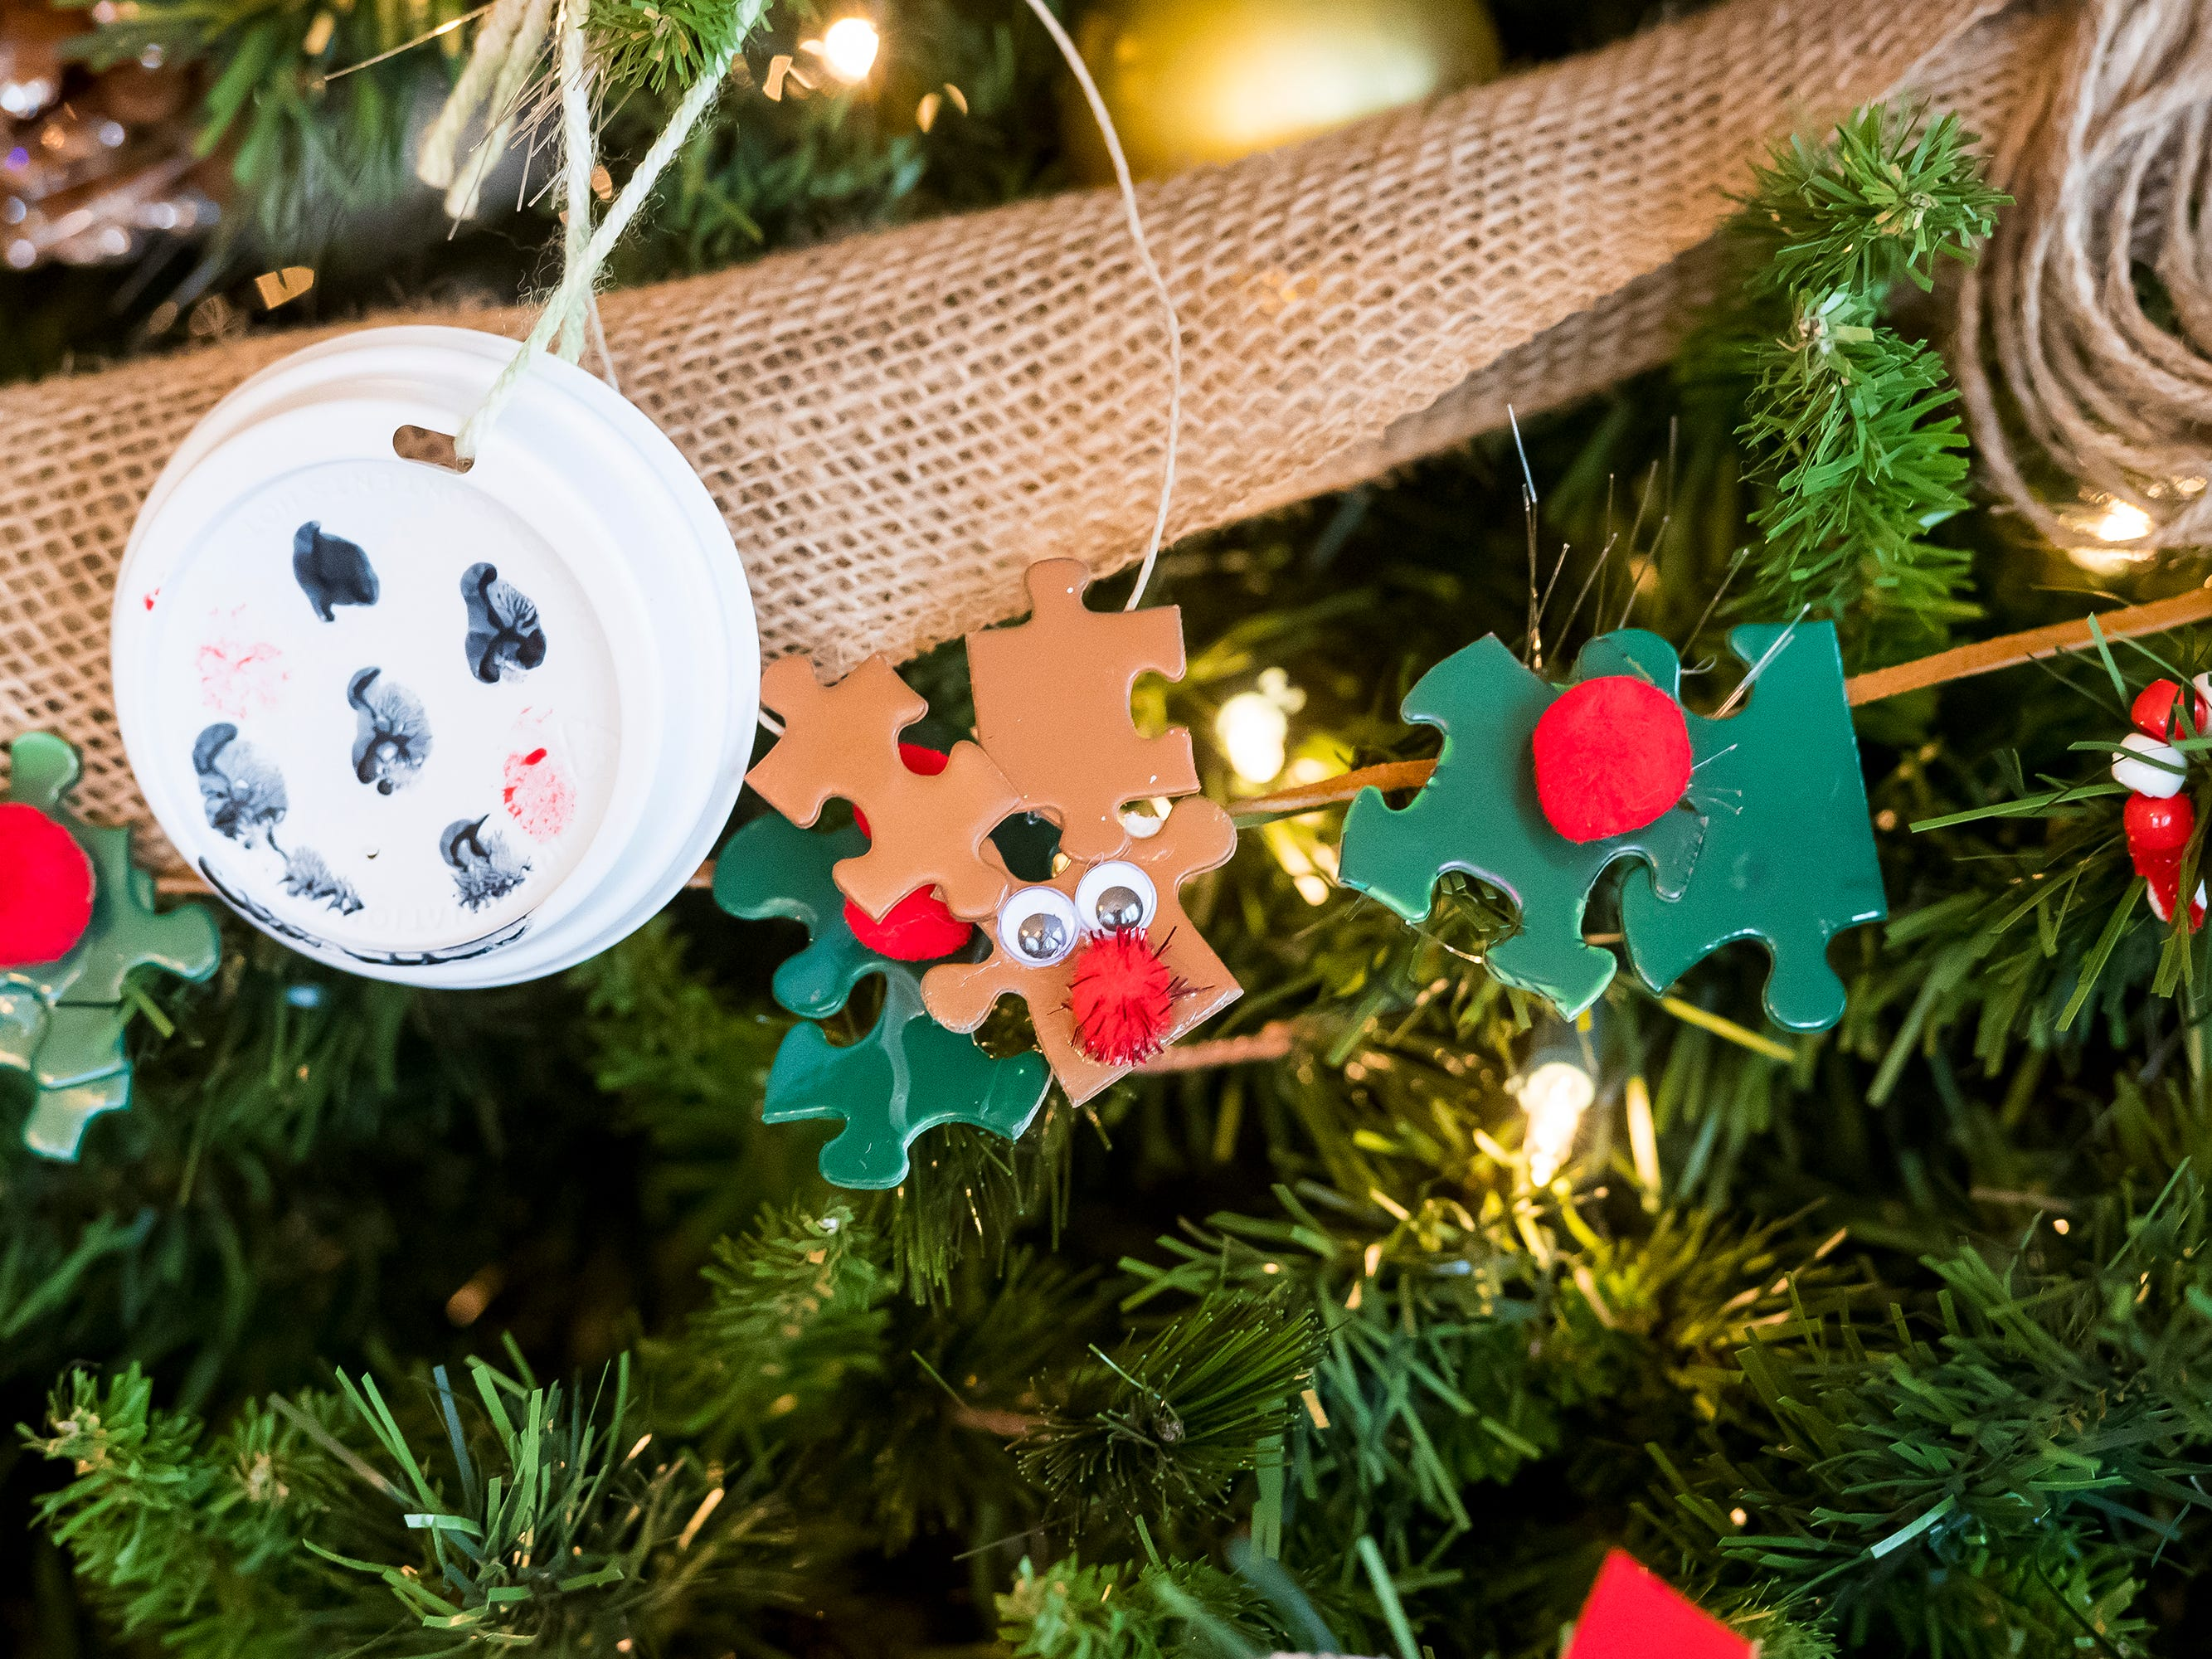 Christmas tree decorations created by children at the Amazing Kids Clubs in Hanover and Red Lion adorn a tree at the Warehime-Myers Mansion in Hanover.